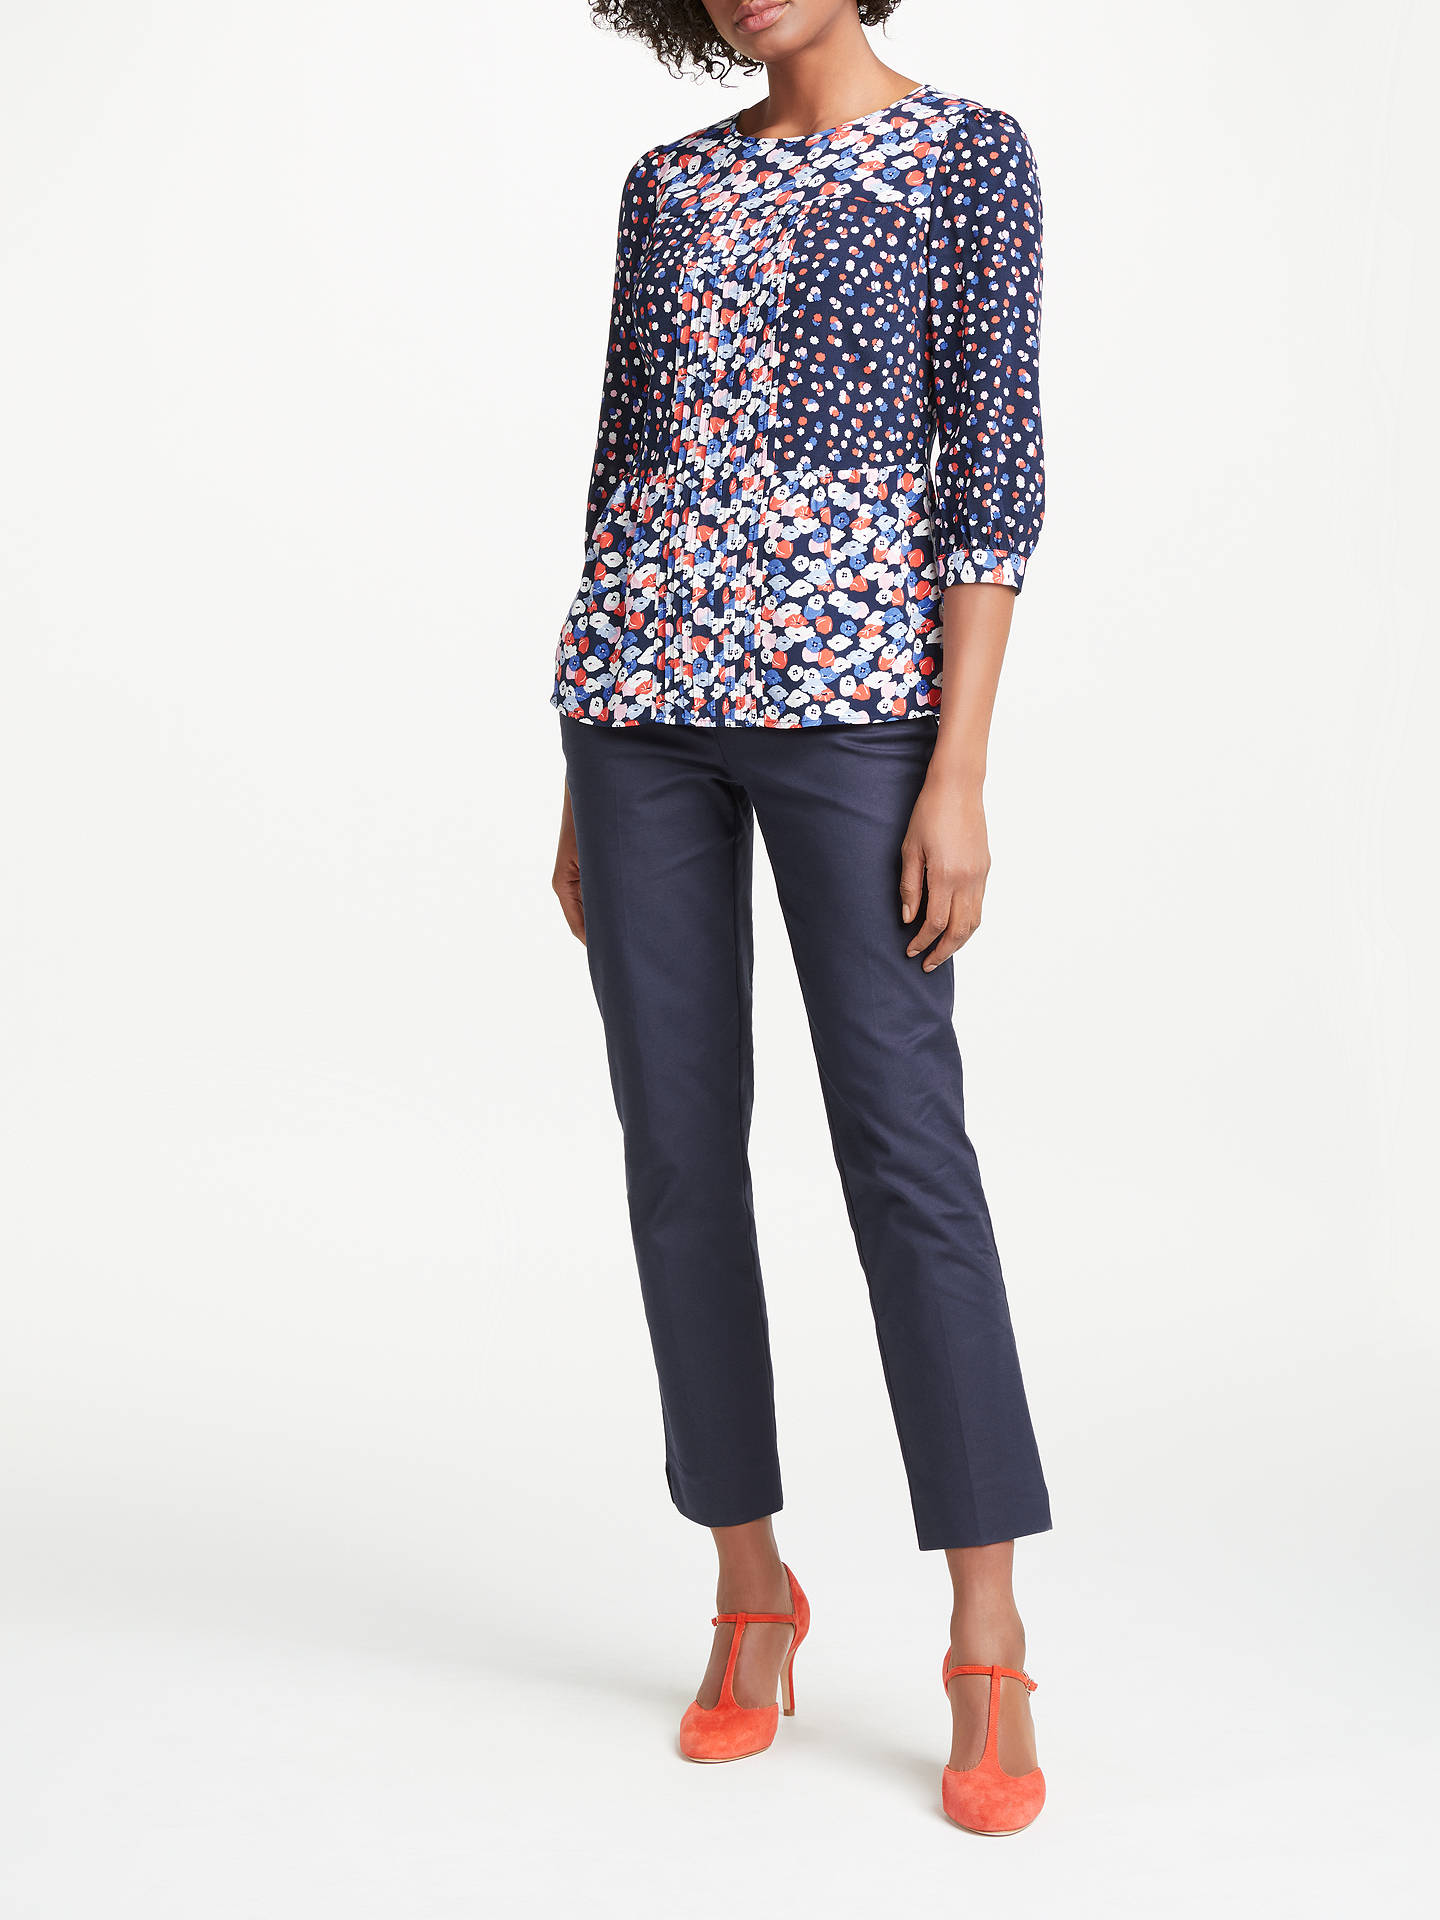 Buy Boden Hotchpotch Poppy Meadow Pintuck Top, Navy/Multi, 8 Online at johnlewis.com